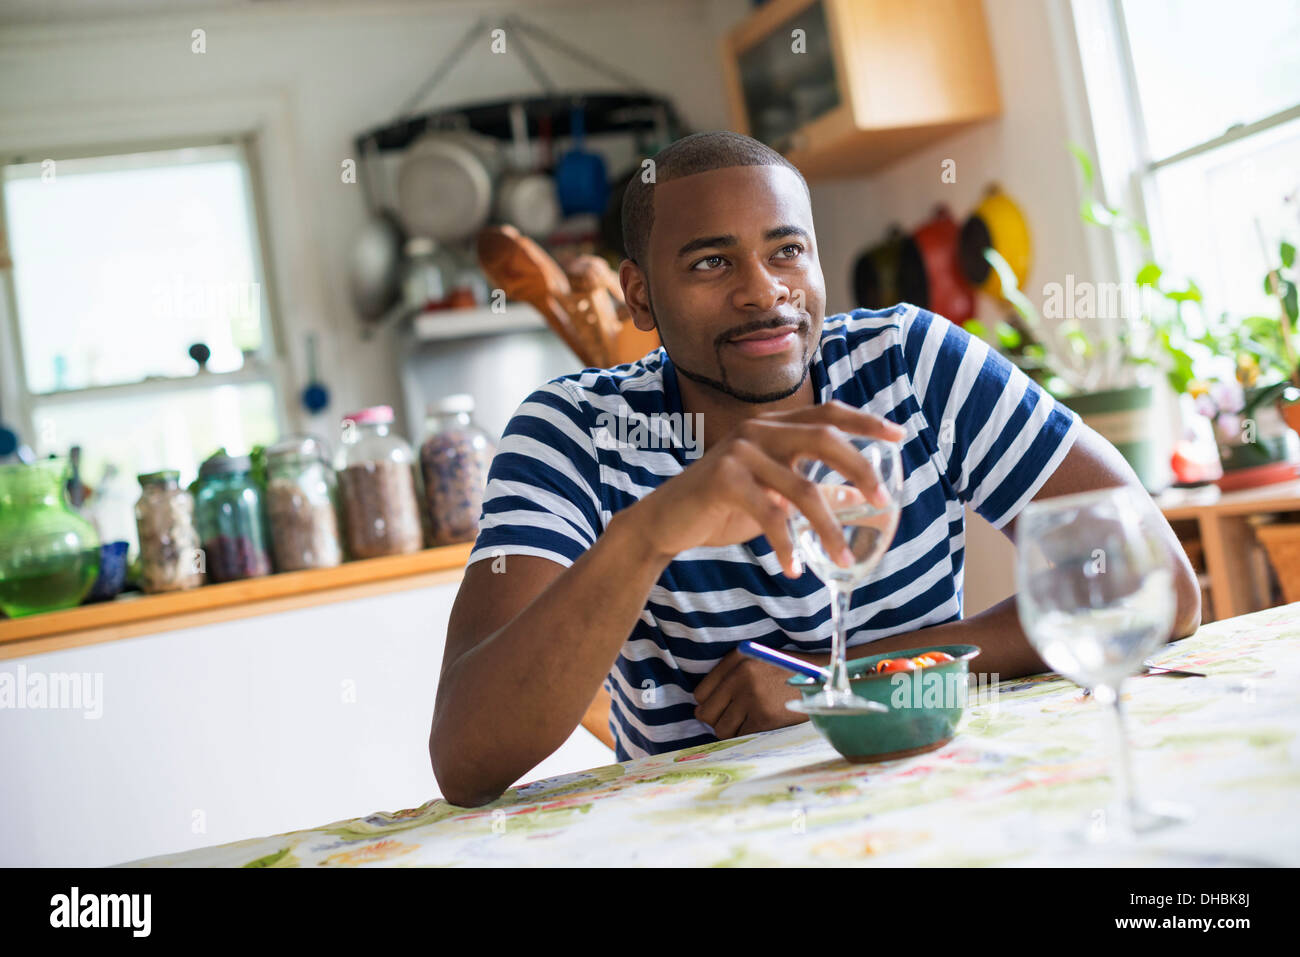 A man sitting at a table eating dessert, holding a glass of wine. - Stock Image